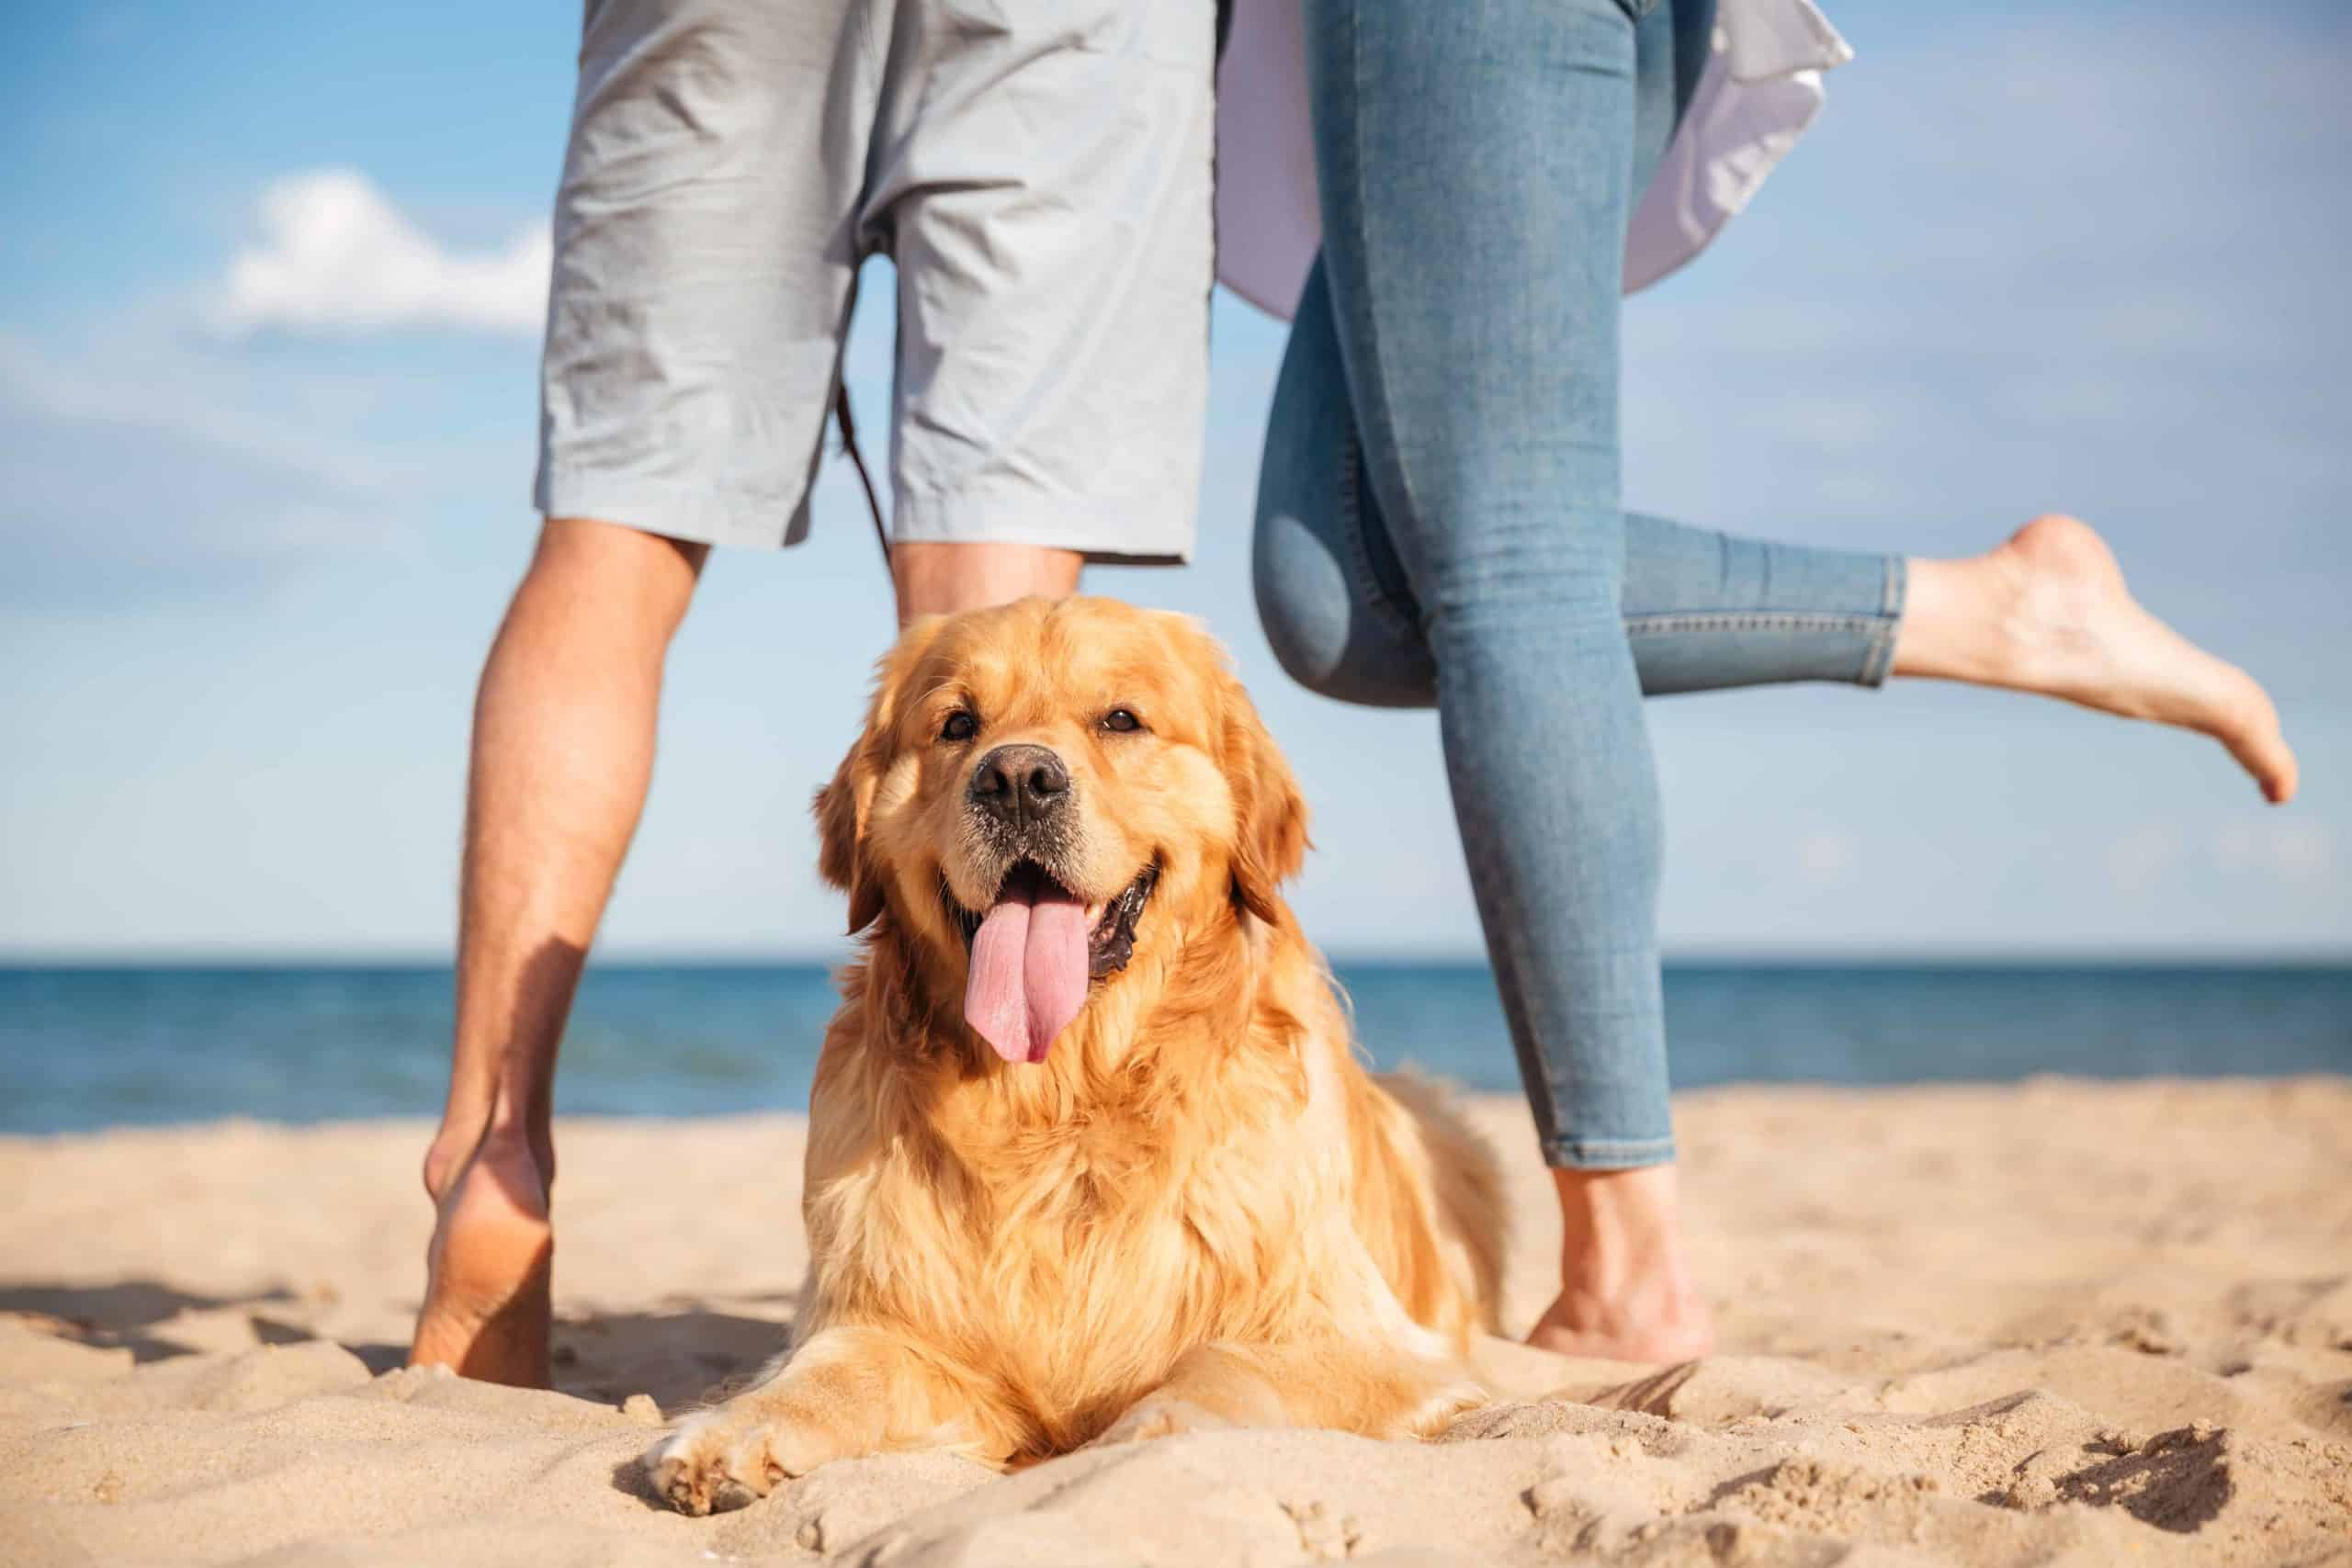 Happy couple poses with golden retriever at the beach. Start planning the perfect dog-friendly date. Consider biking, a trip to the dog park, a baseball game, or watching a sunset.